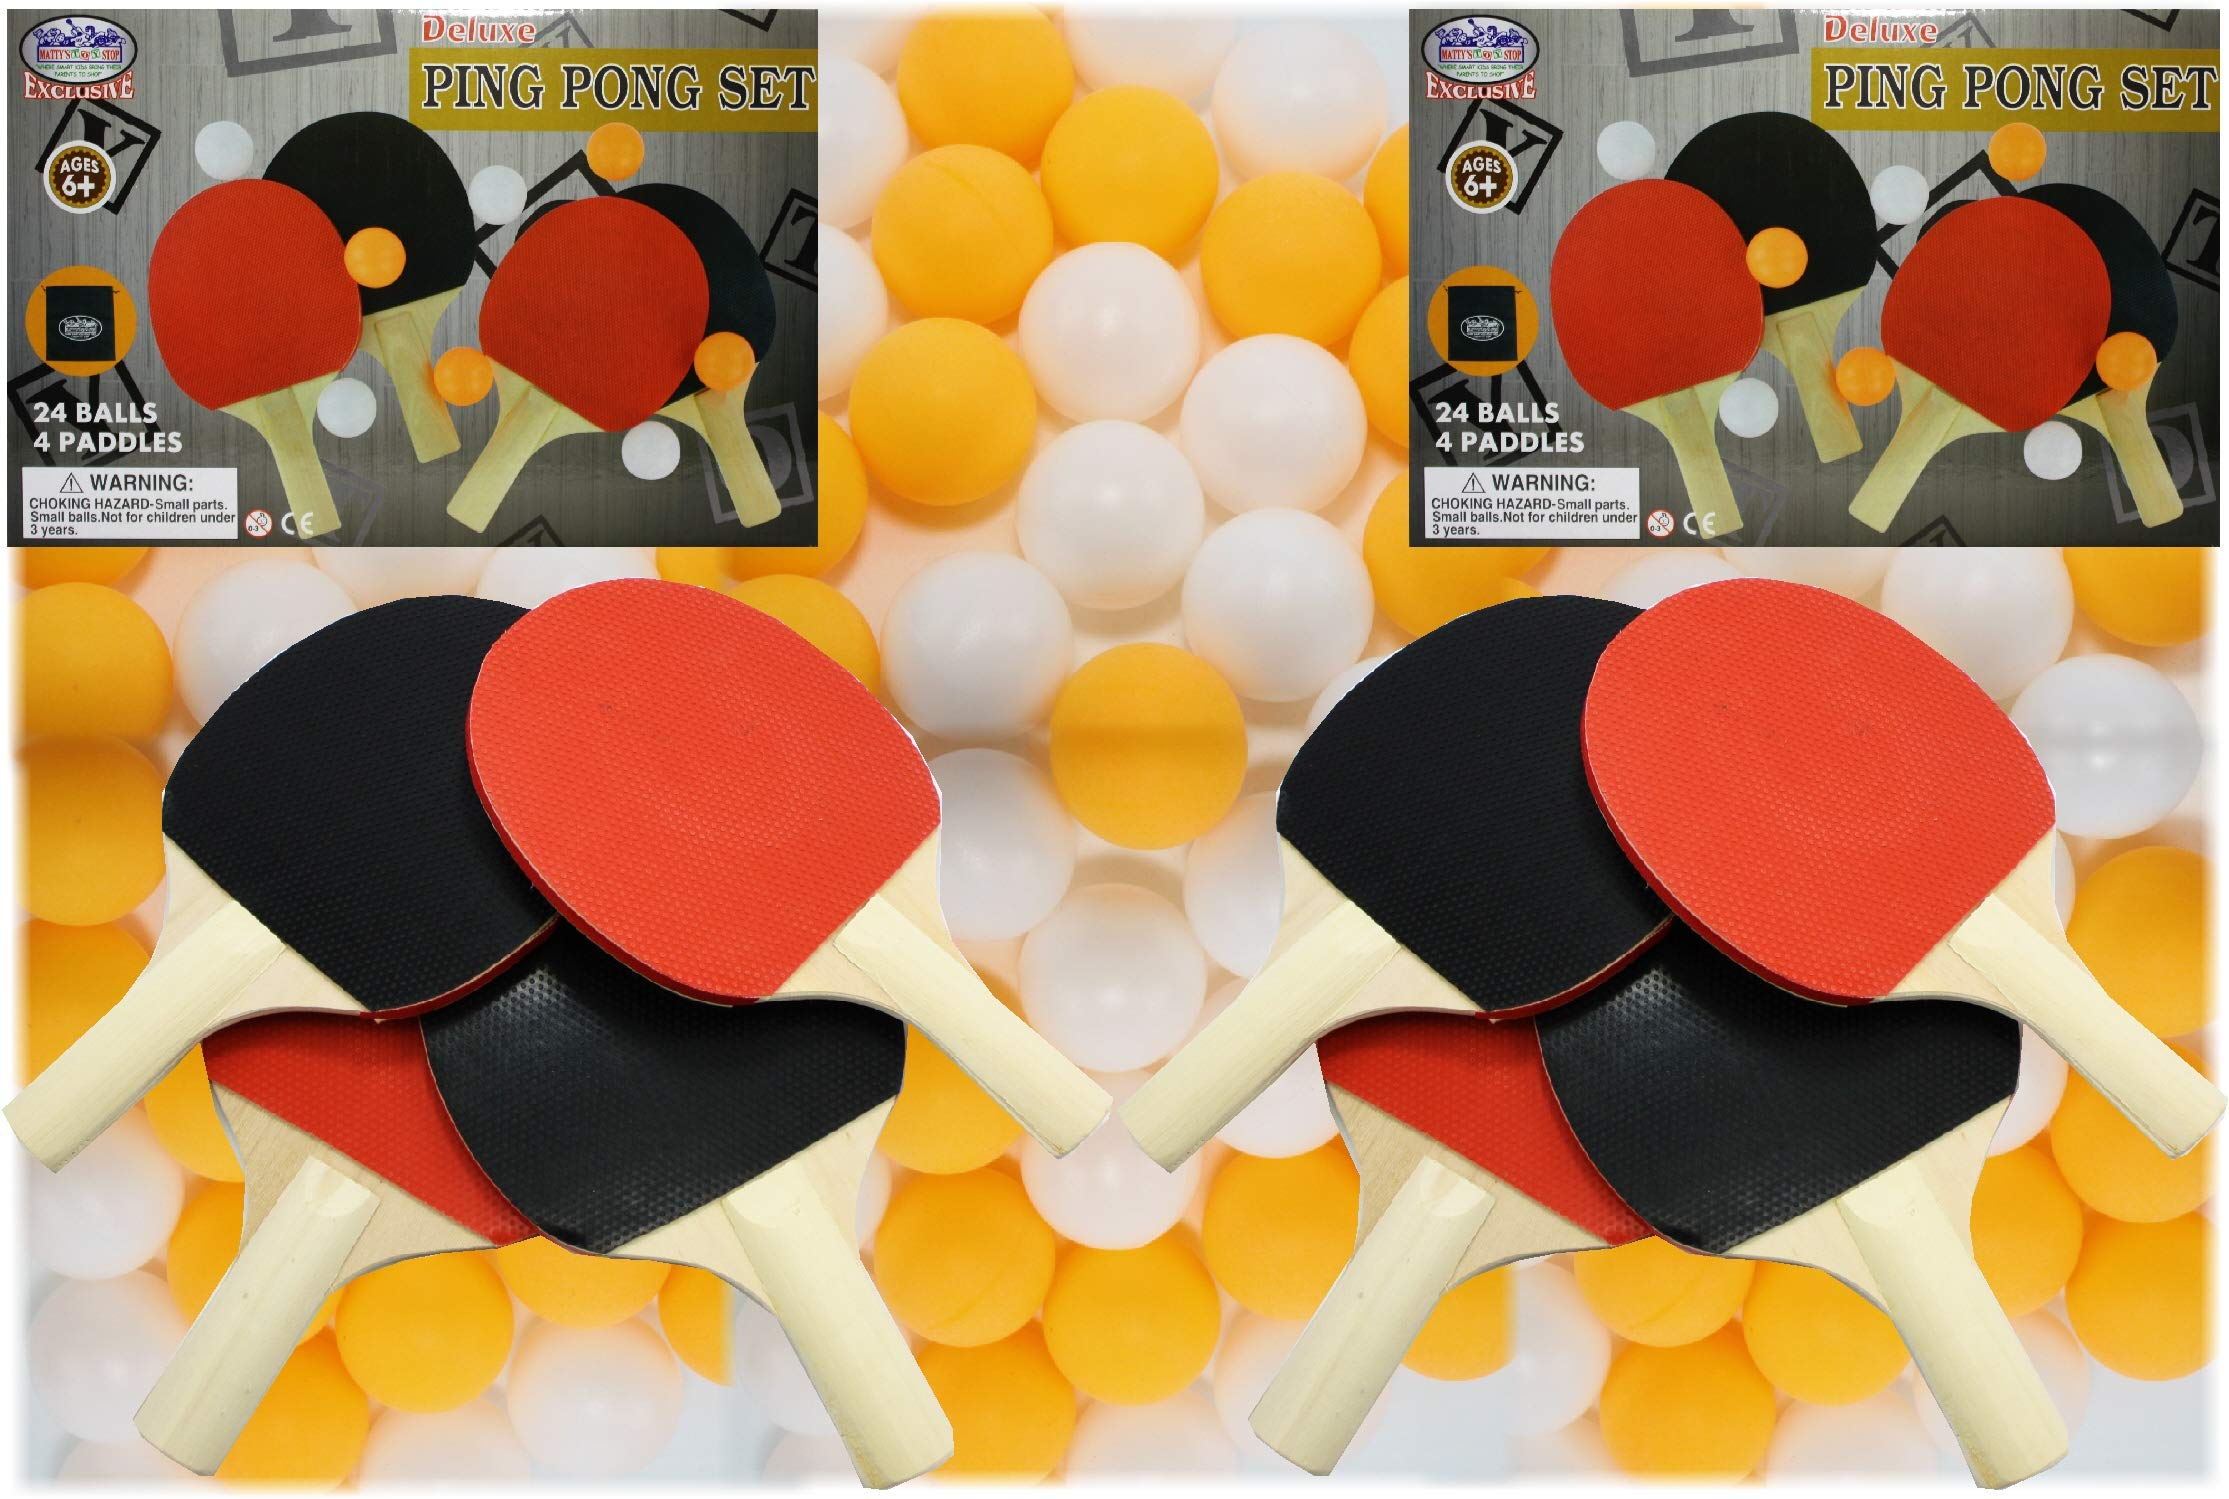 Matty's Toy Stop Deluxe Table Tennis (Ping Pong) Refill Set with 8 Paddles, 48 Balls (24 Orange & 24 White) & 2 Storage Bags